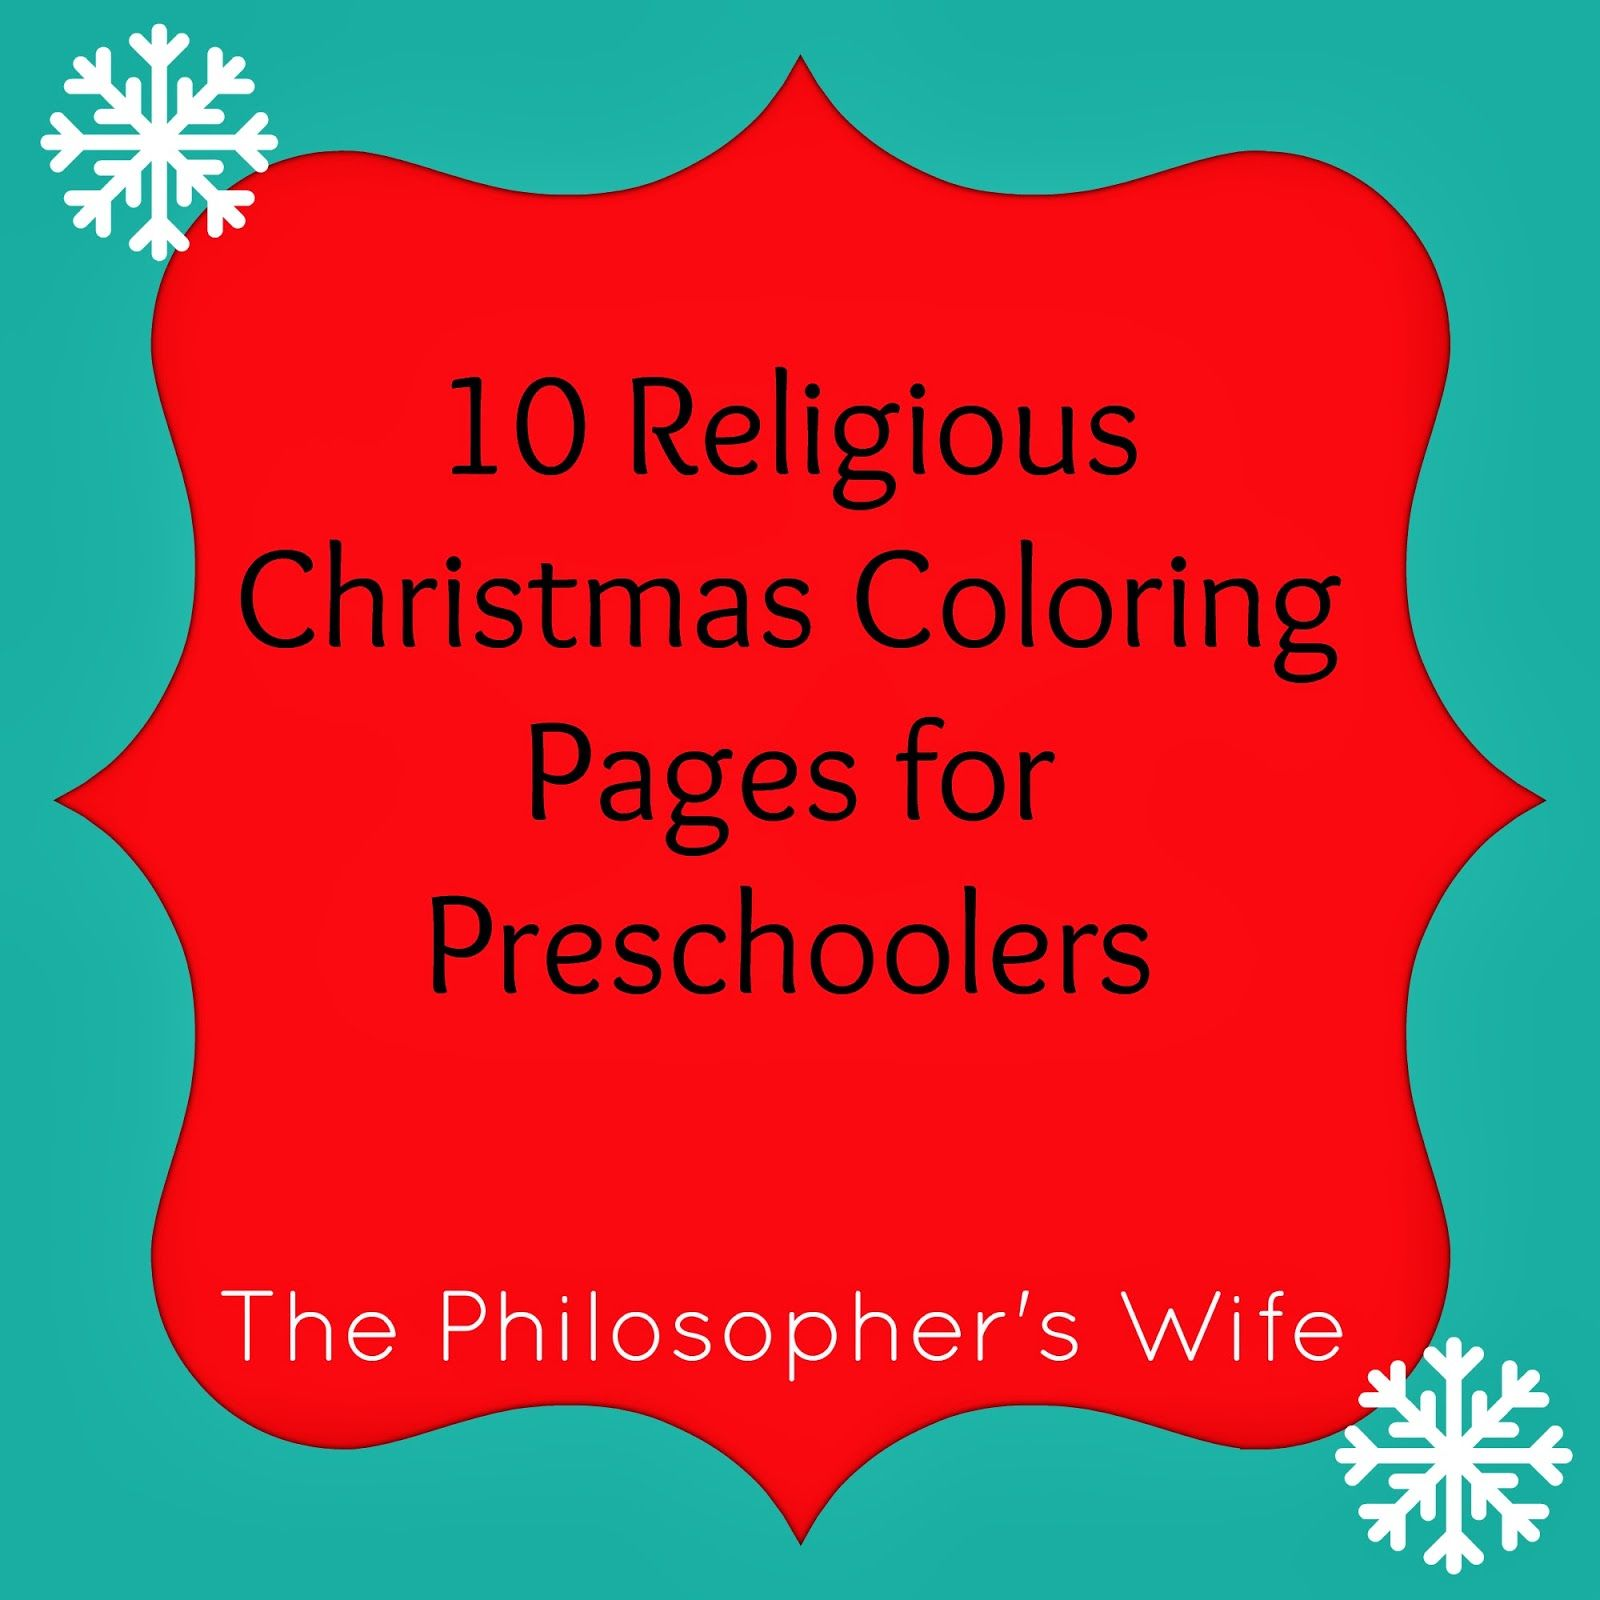 The Philosopher's Wife: 10 Religious Christmas Coloring Pages for Preschoo...